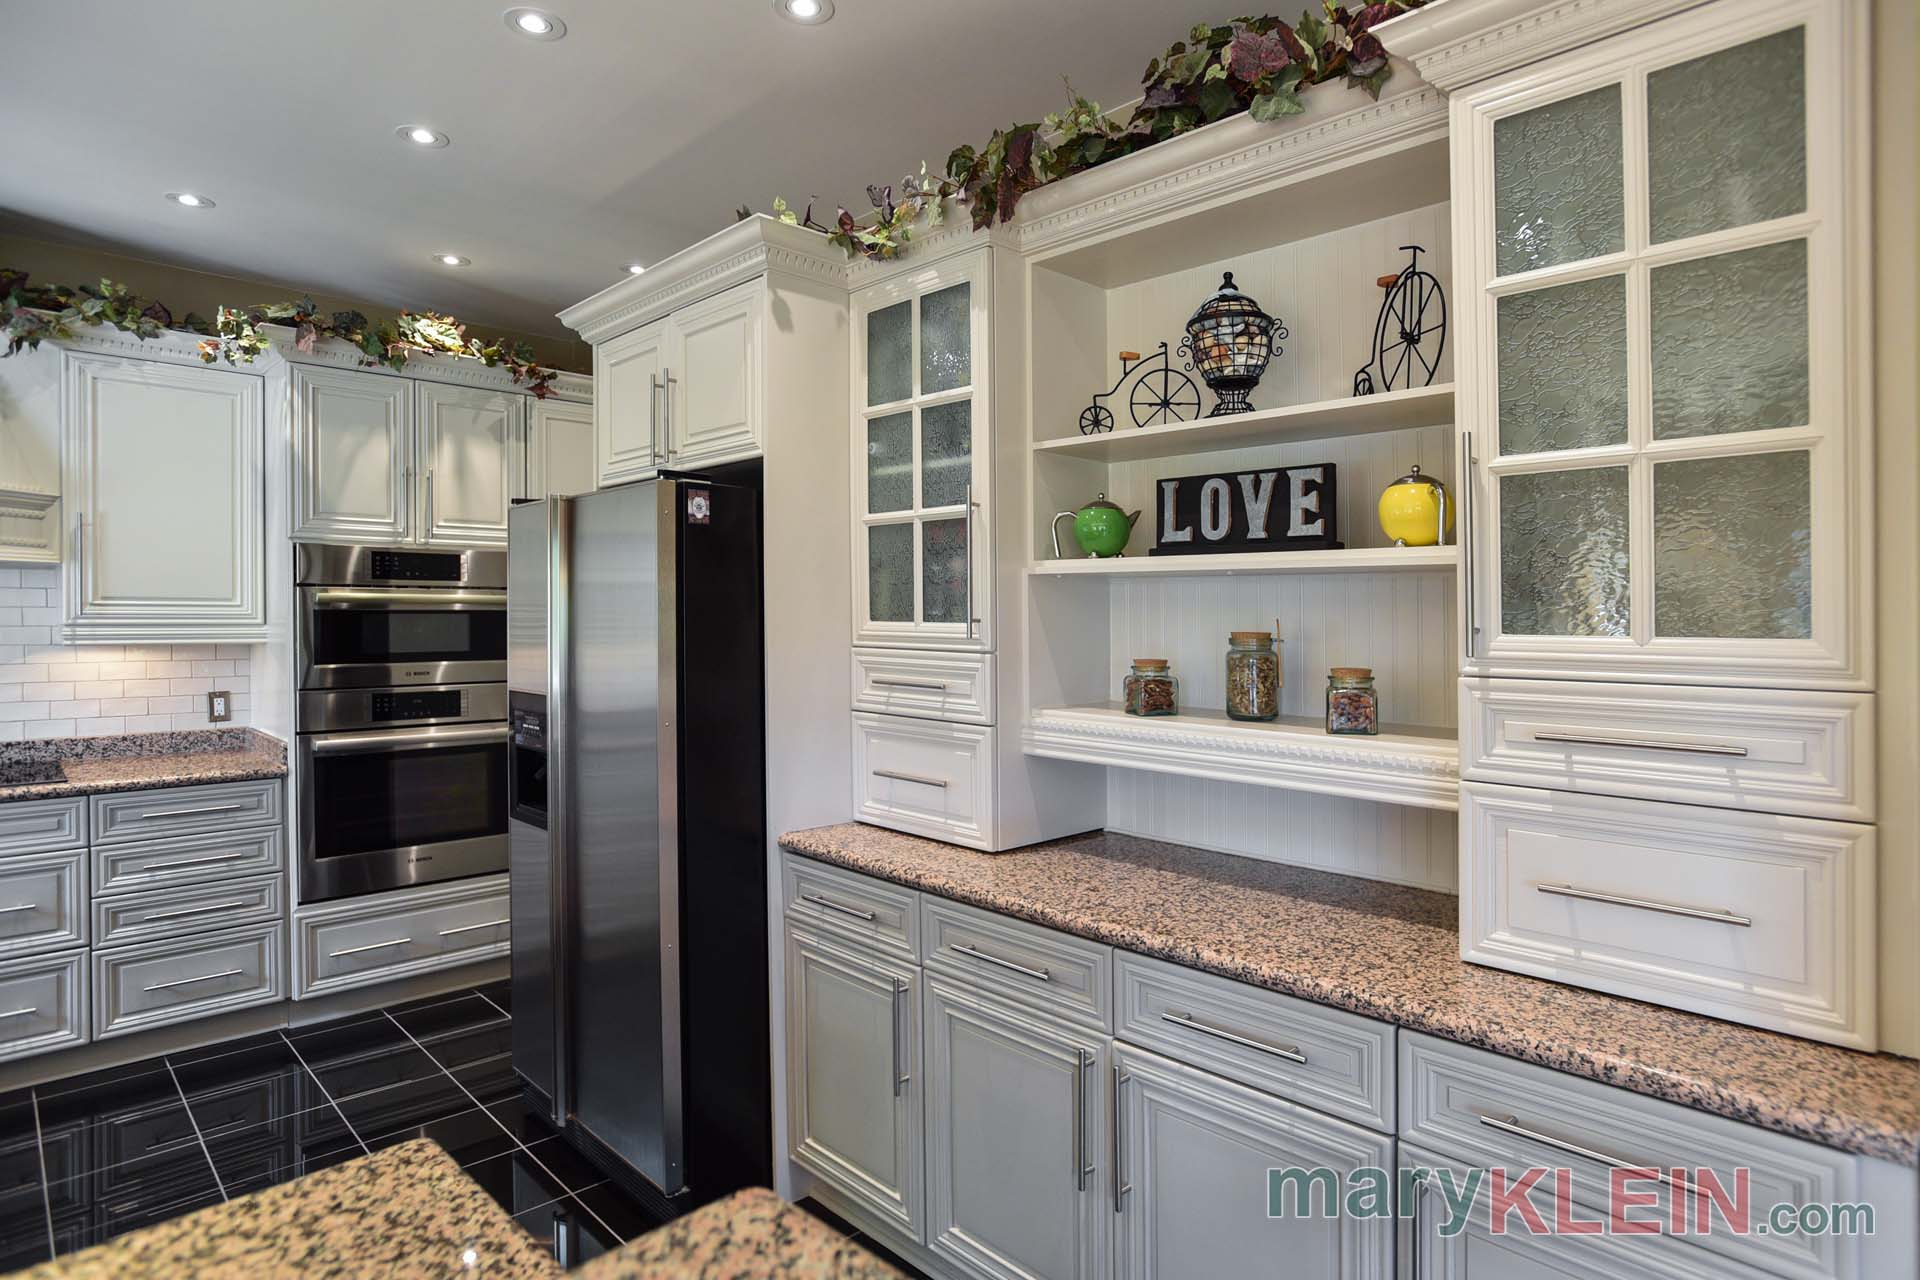 Kitchen, Built in cabinetry, Pot drawers